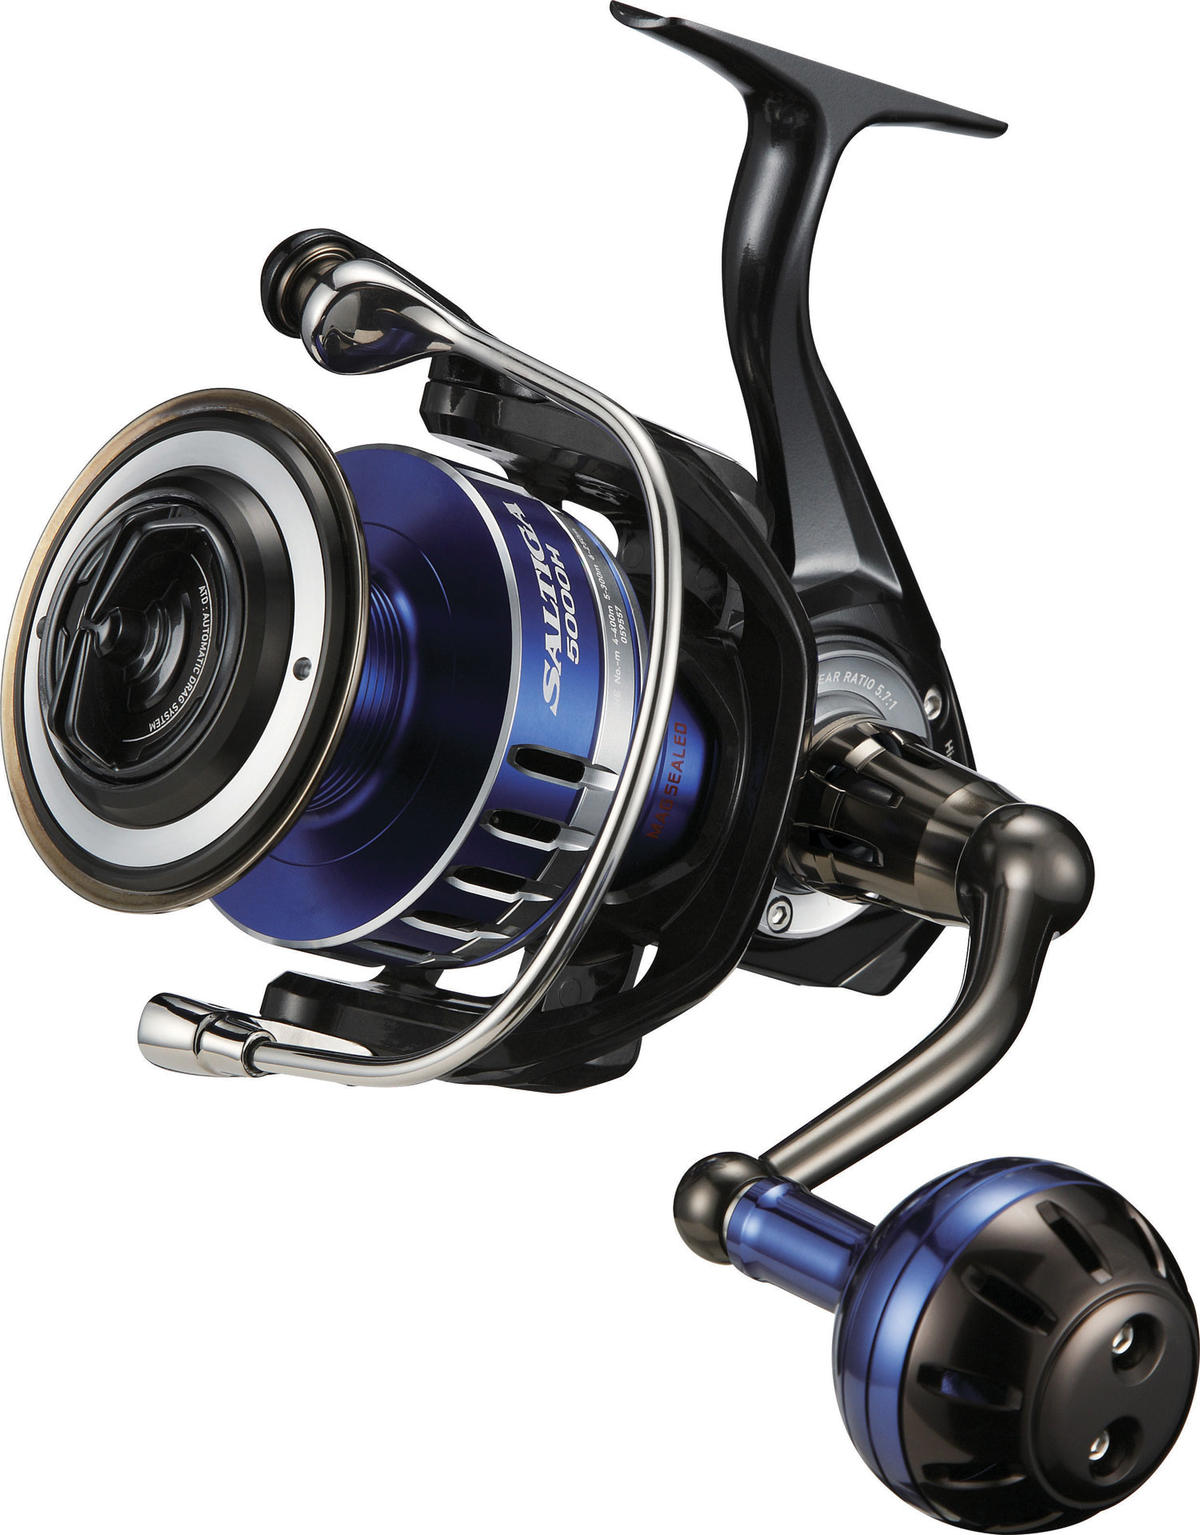 Special Clearance Offer Daiwa 15 Saltiga 4000H Mag Sealed Spinning Reel